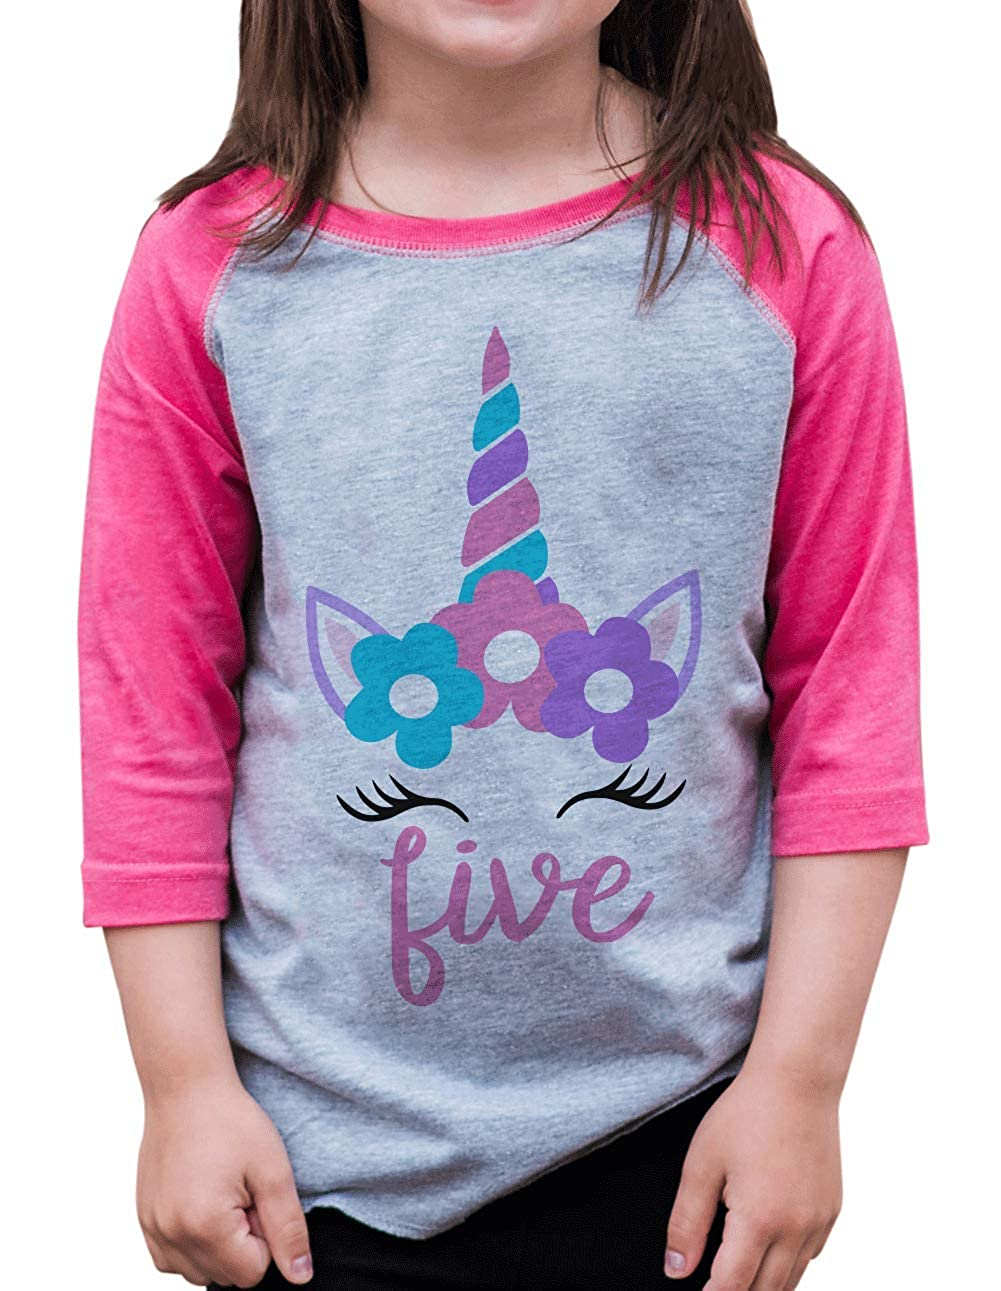 7 ate 9 Apparel Girls Five Birthday Unicorn Raglan Tee Pink